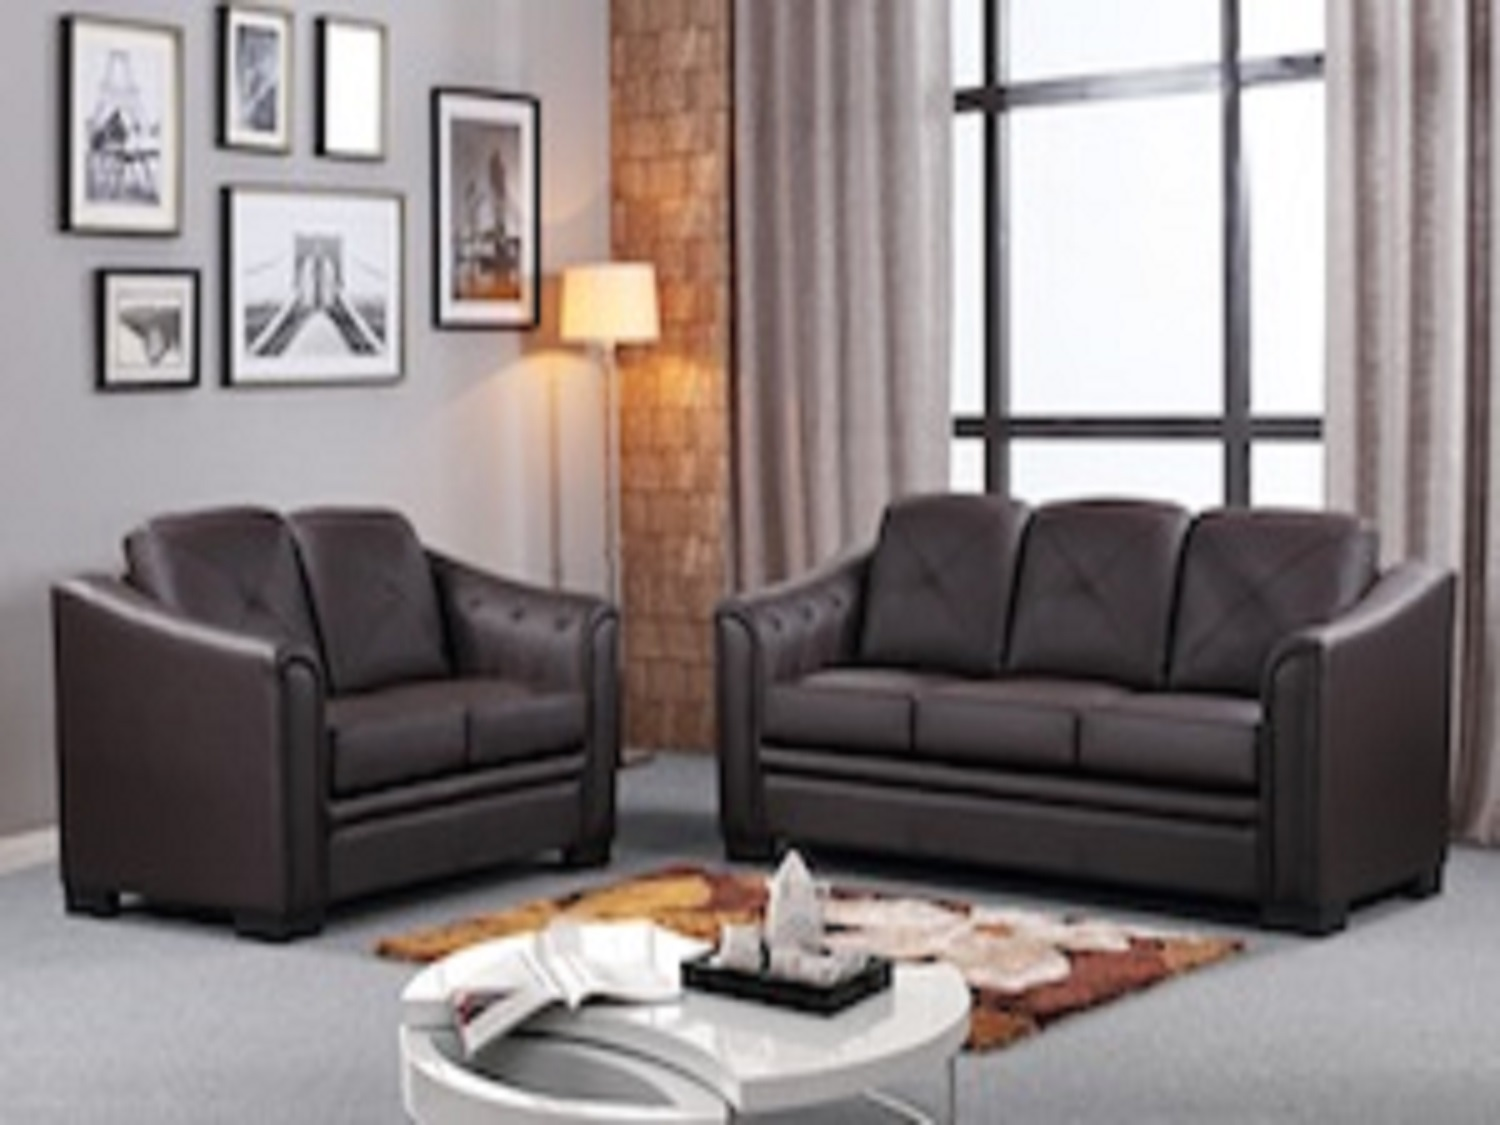 ALMA CHOCOLATE SOFA SET Living Rooms Modern, K89, Sofa Sets by Midha Furniture to Brampton, Mississauga, Etobicoke, Toronto, Scraborough, Caledon, Oakville, Markham, Ajax, Pickering, Oshawa, Richmondhill, Kitchener, Hamilton and GTA area